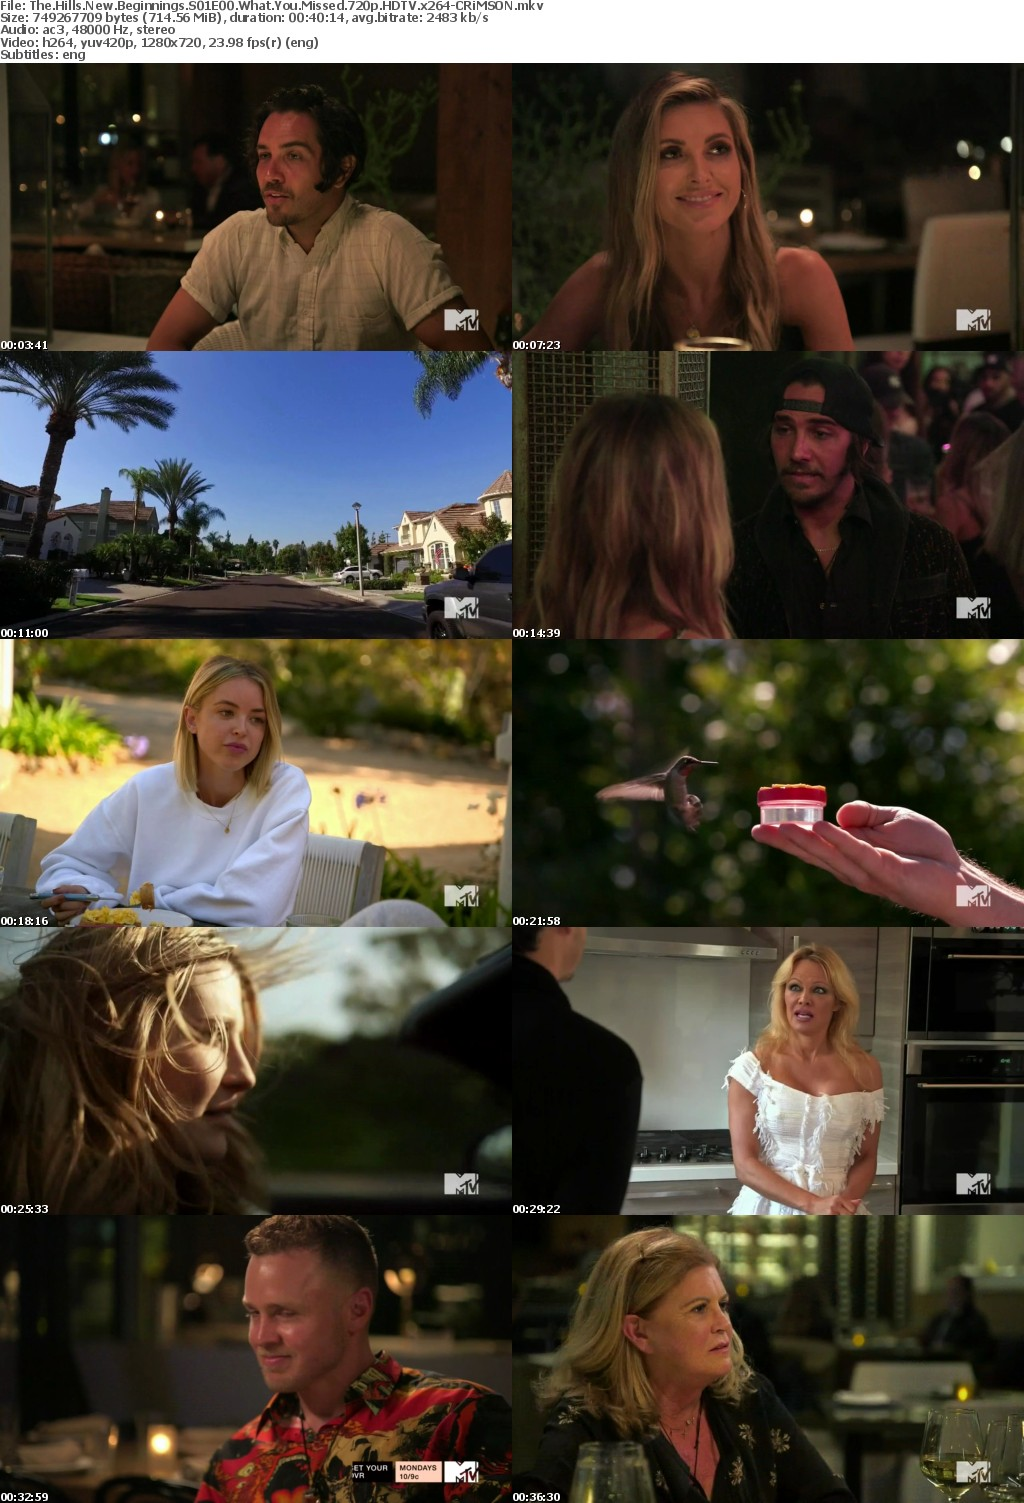 The Hills New Beginnings S01E00 What You Missed 720p HDTV x264-CRiMSON